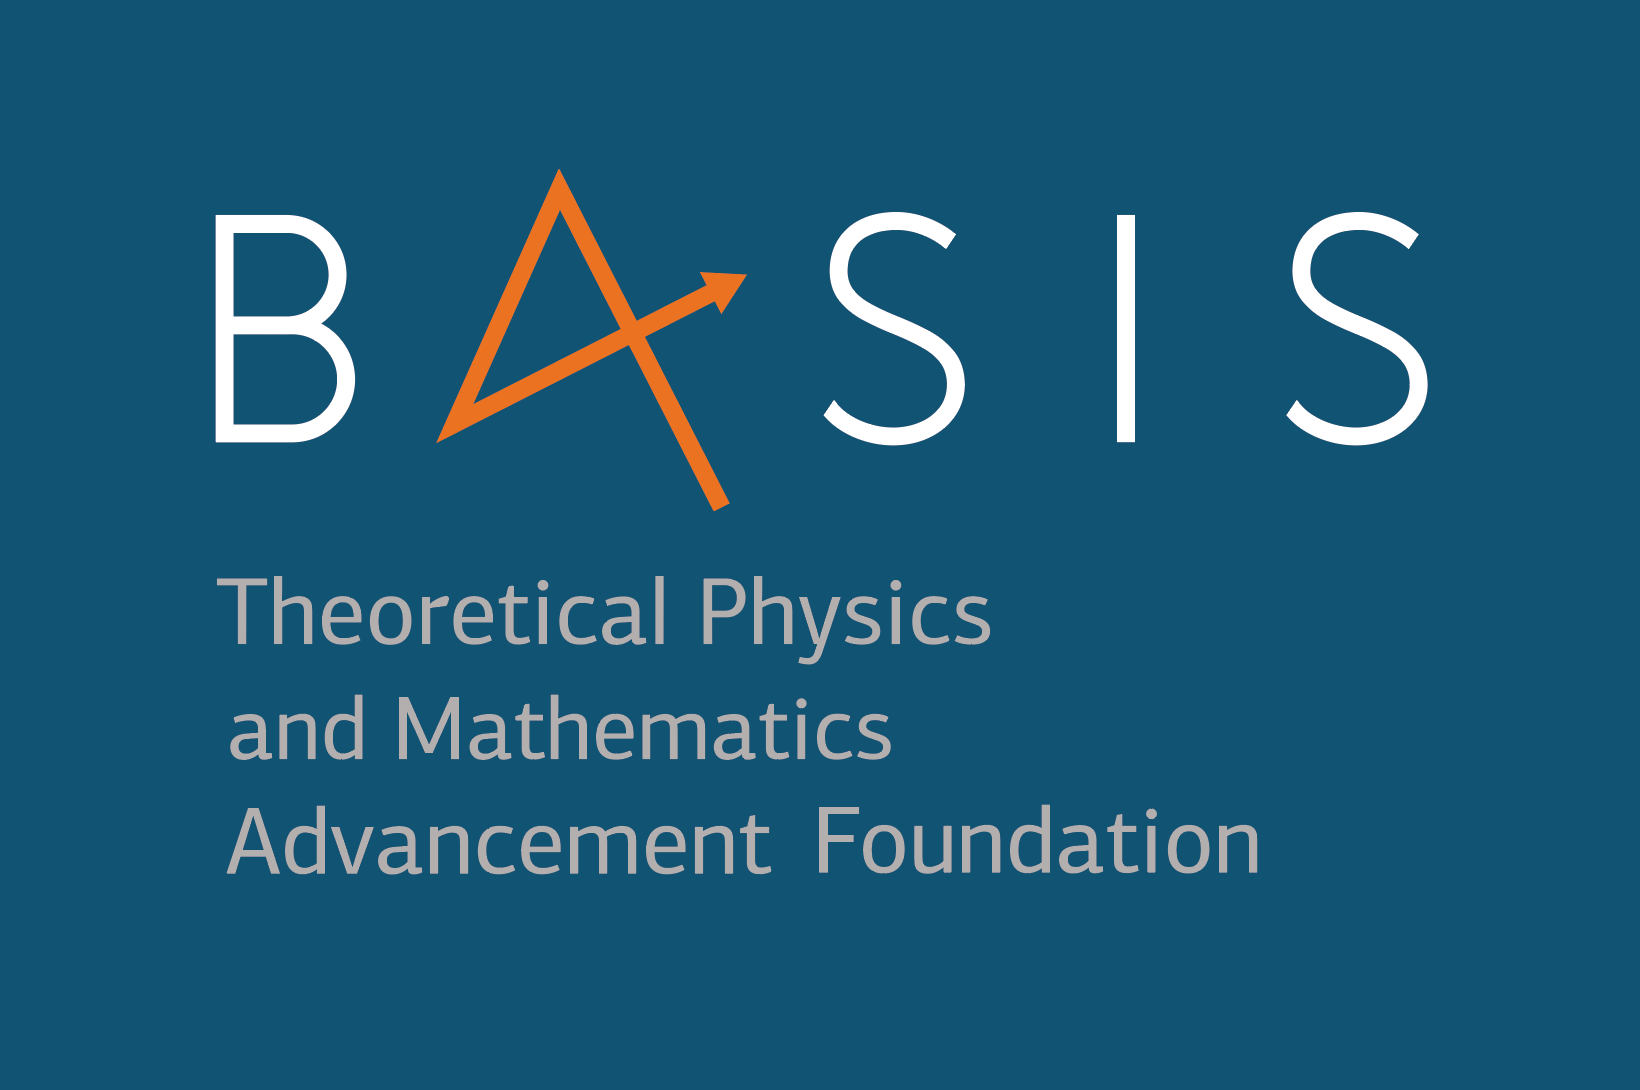 "Foundation for the advancement of theoretical physics and mathematics ""BASIS"""